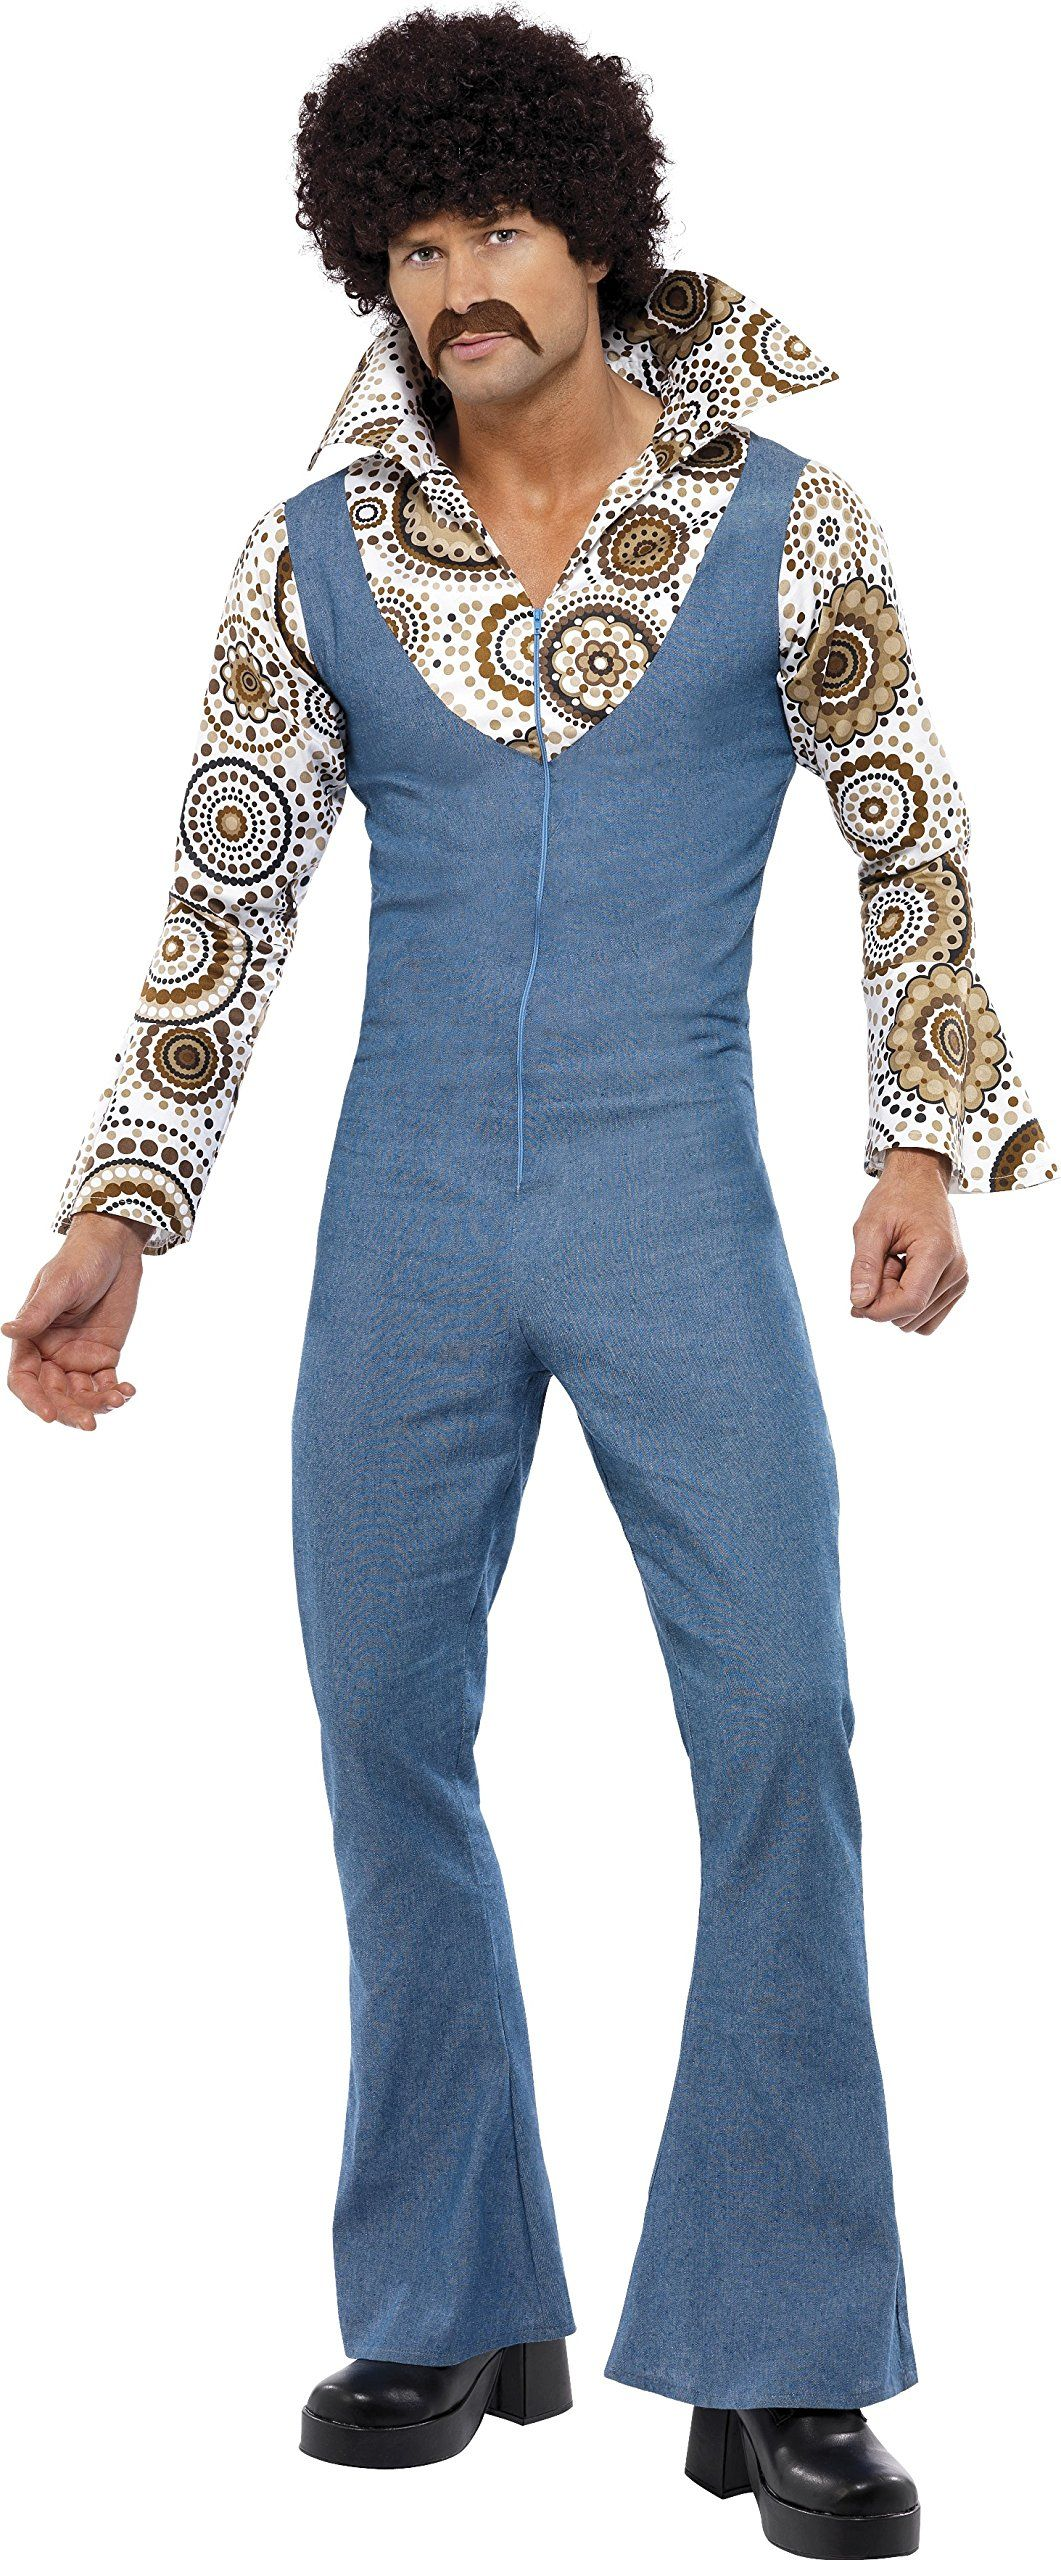 05021b4f8fd8 Smiffys Mens Groovy Dancer Costume Jumpsuit With Attached Mock Shirt 70  Disco Serious Fun Size L 33216     Review much more at the picture link.